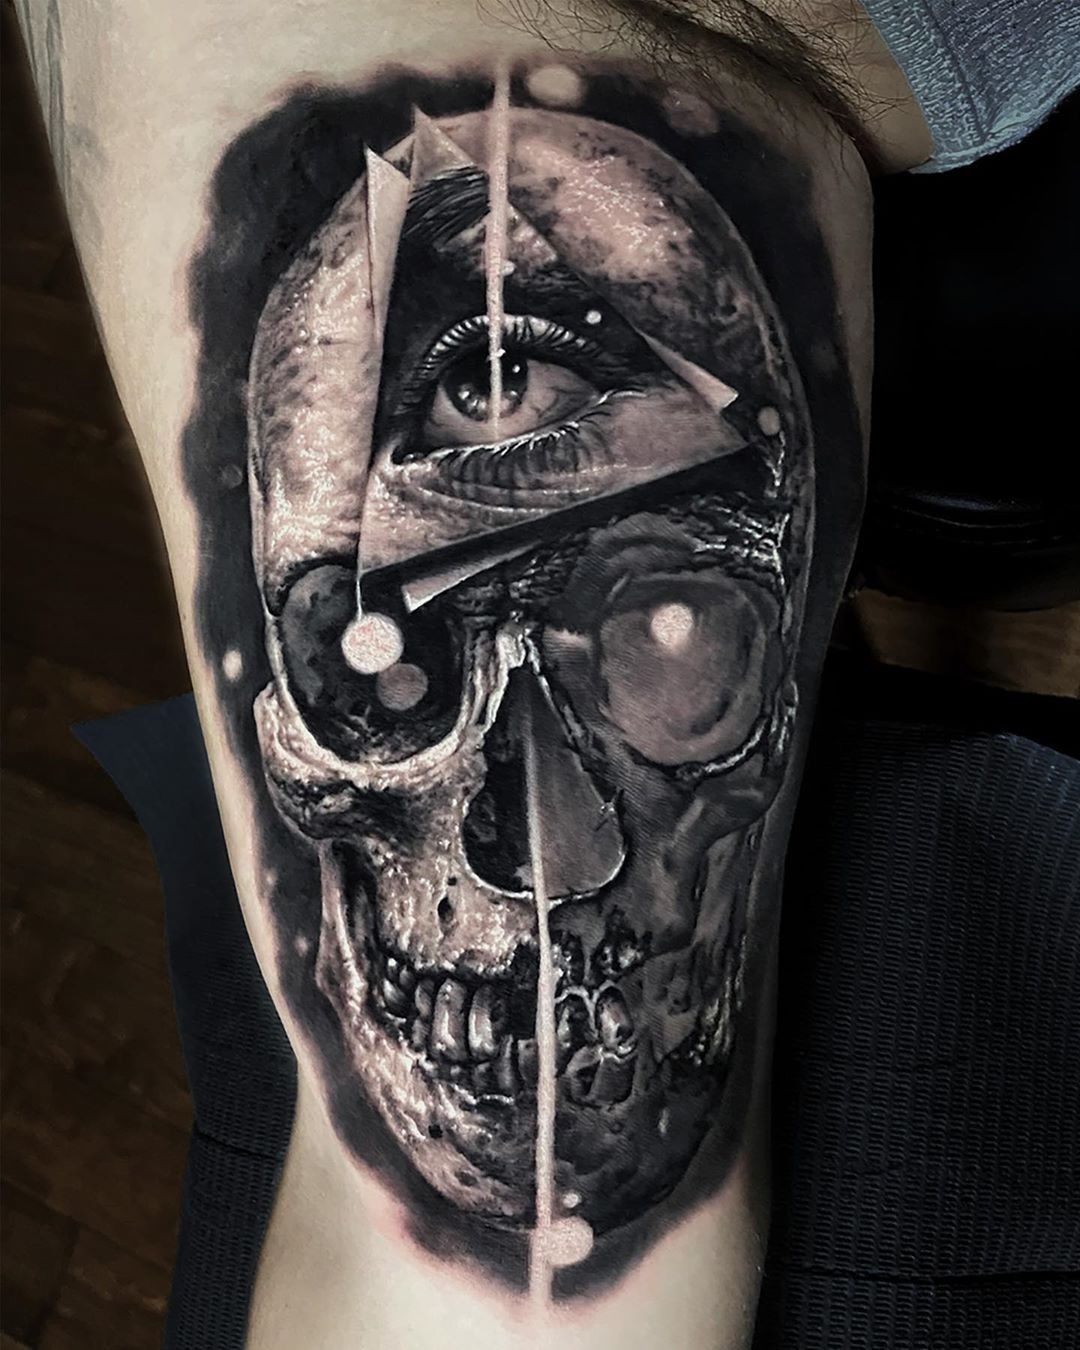 Skull tattoo on the inside of the arm